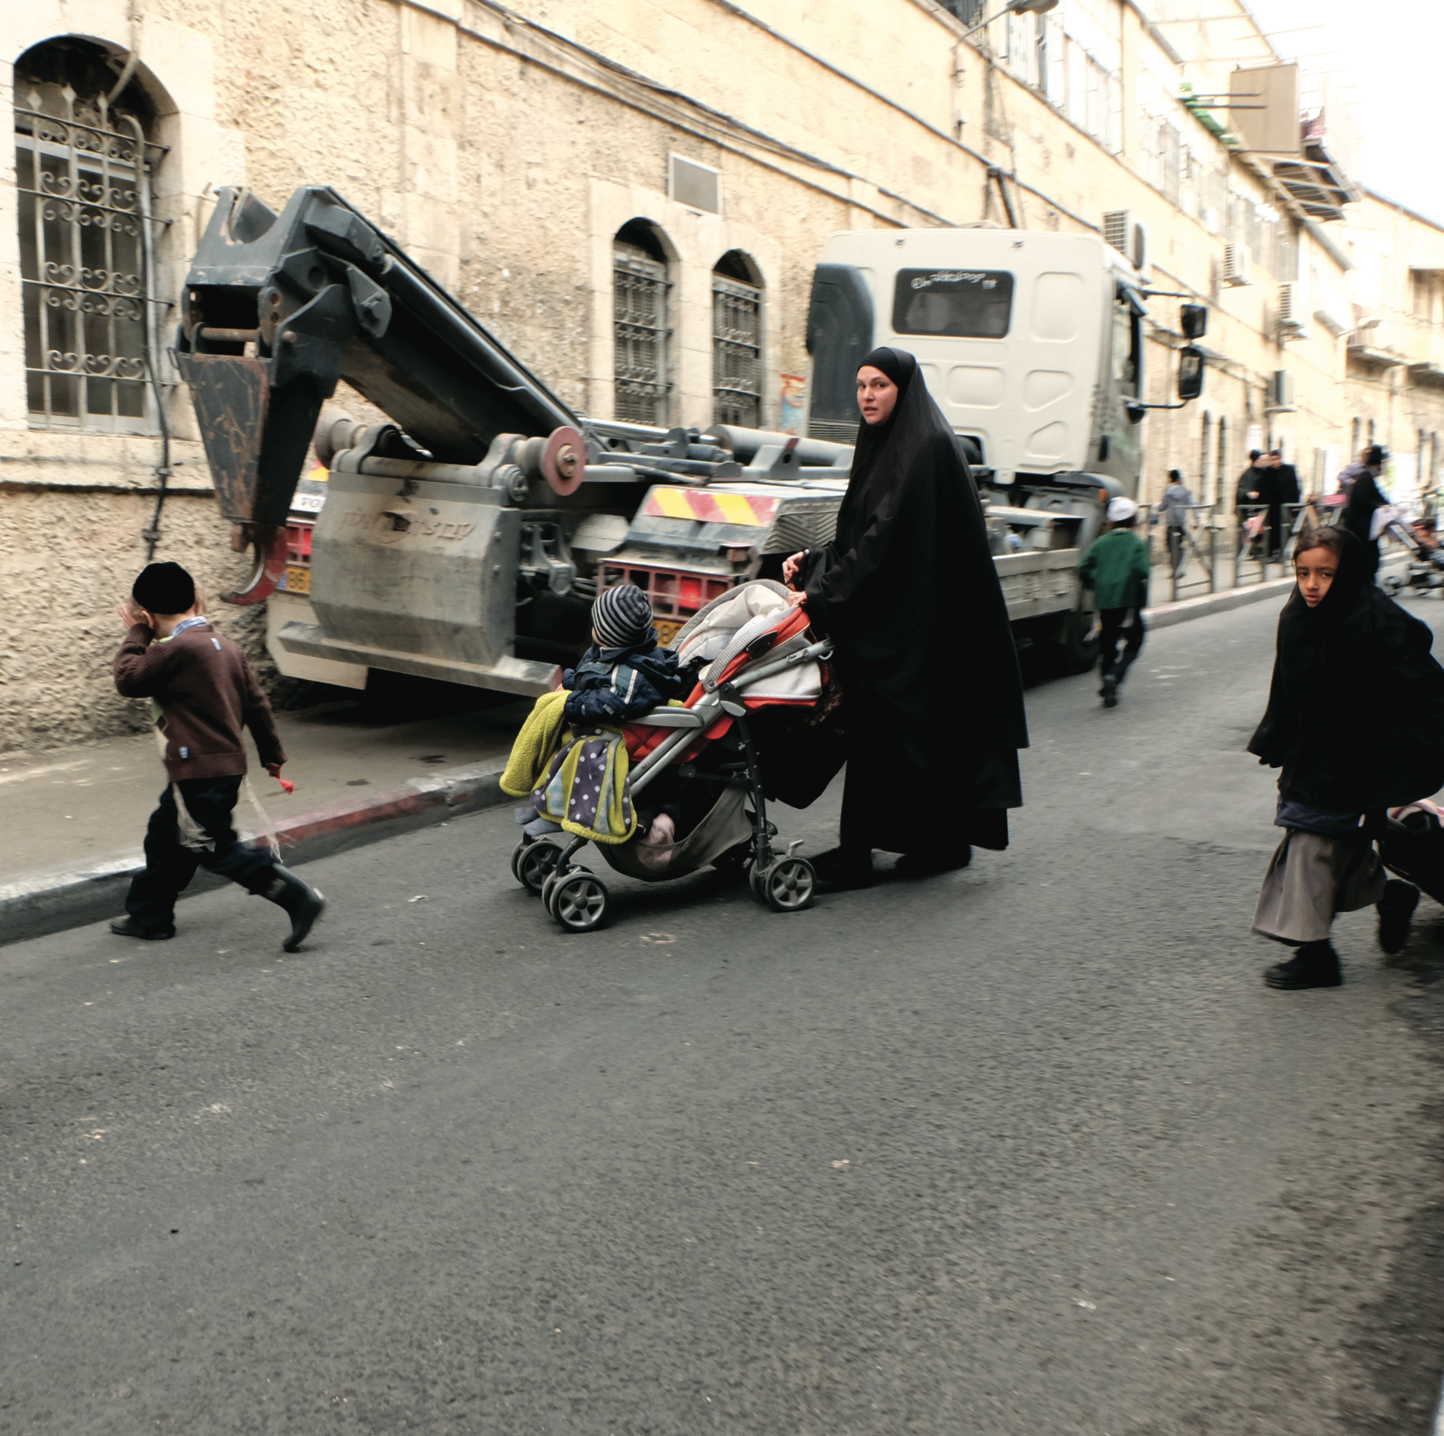 Jerusalem orthodox jewish quarter